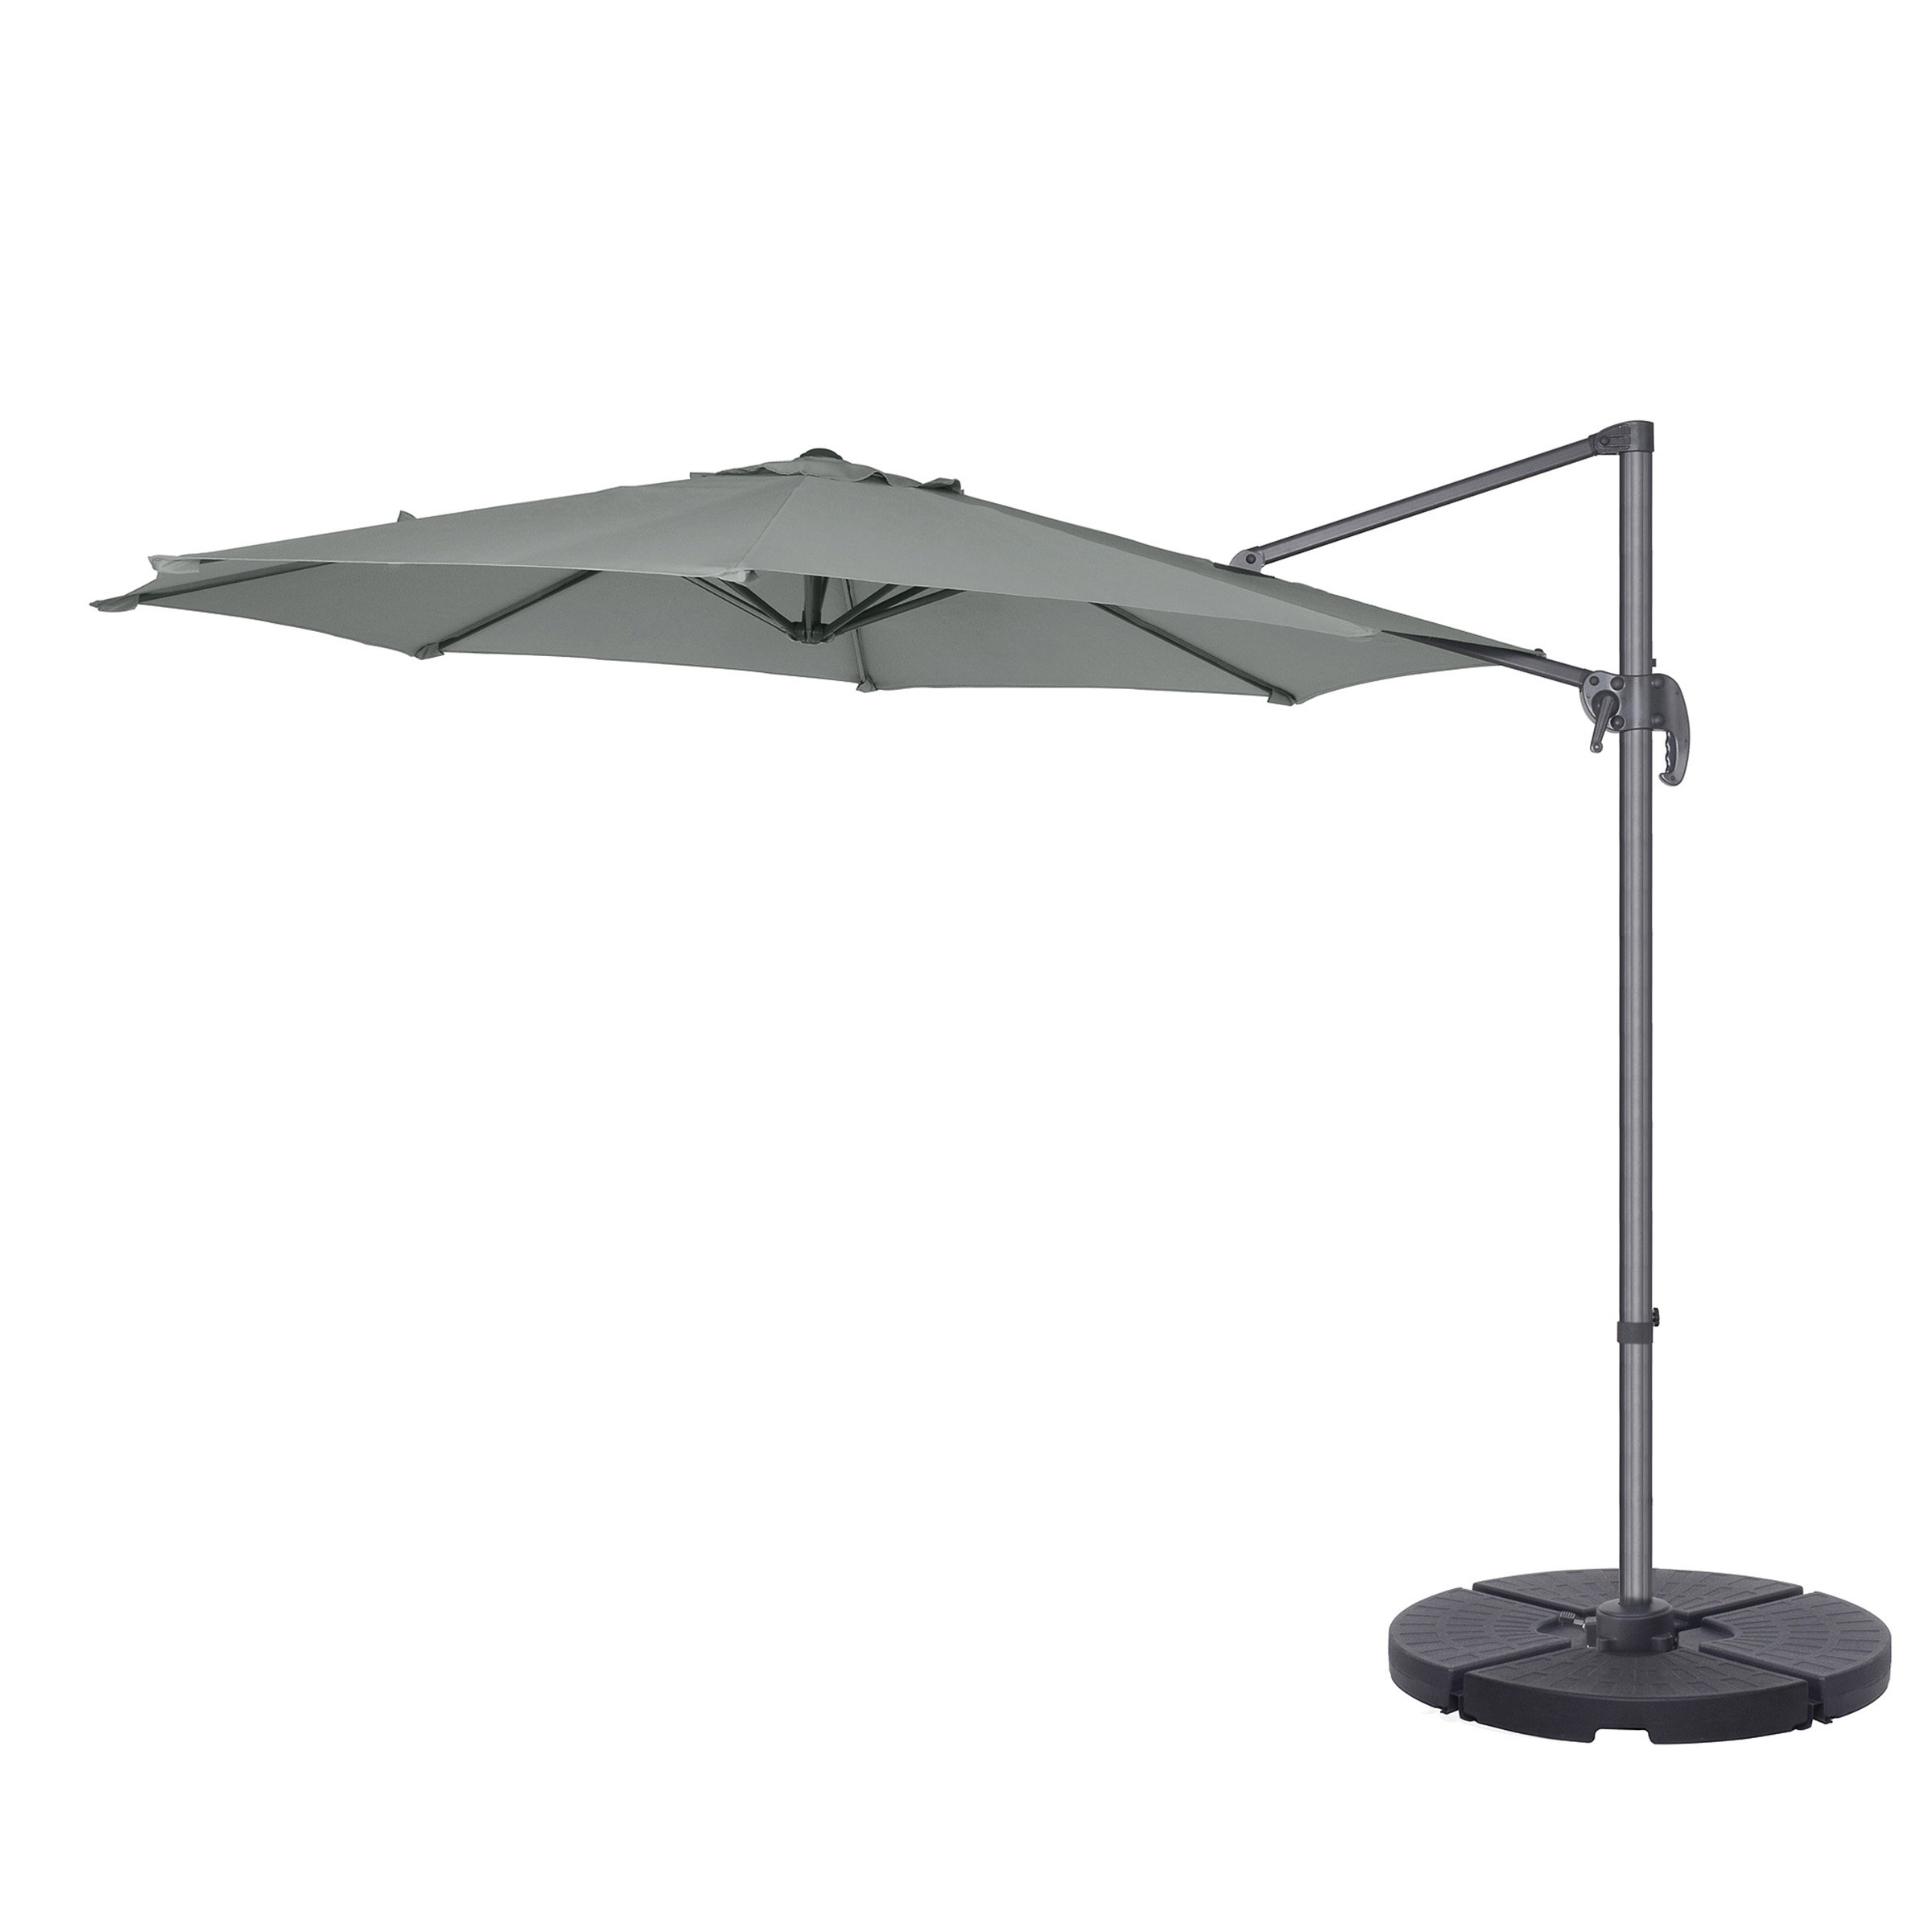 Cockermouth Rotating 10' Cantilever Umbrella Pertaining To Preferred Bostic Cantilever Umbrellas (View 19 of 20)